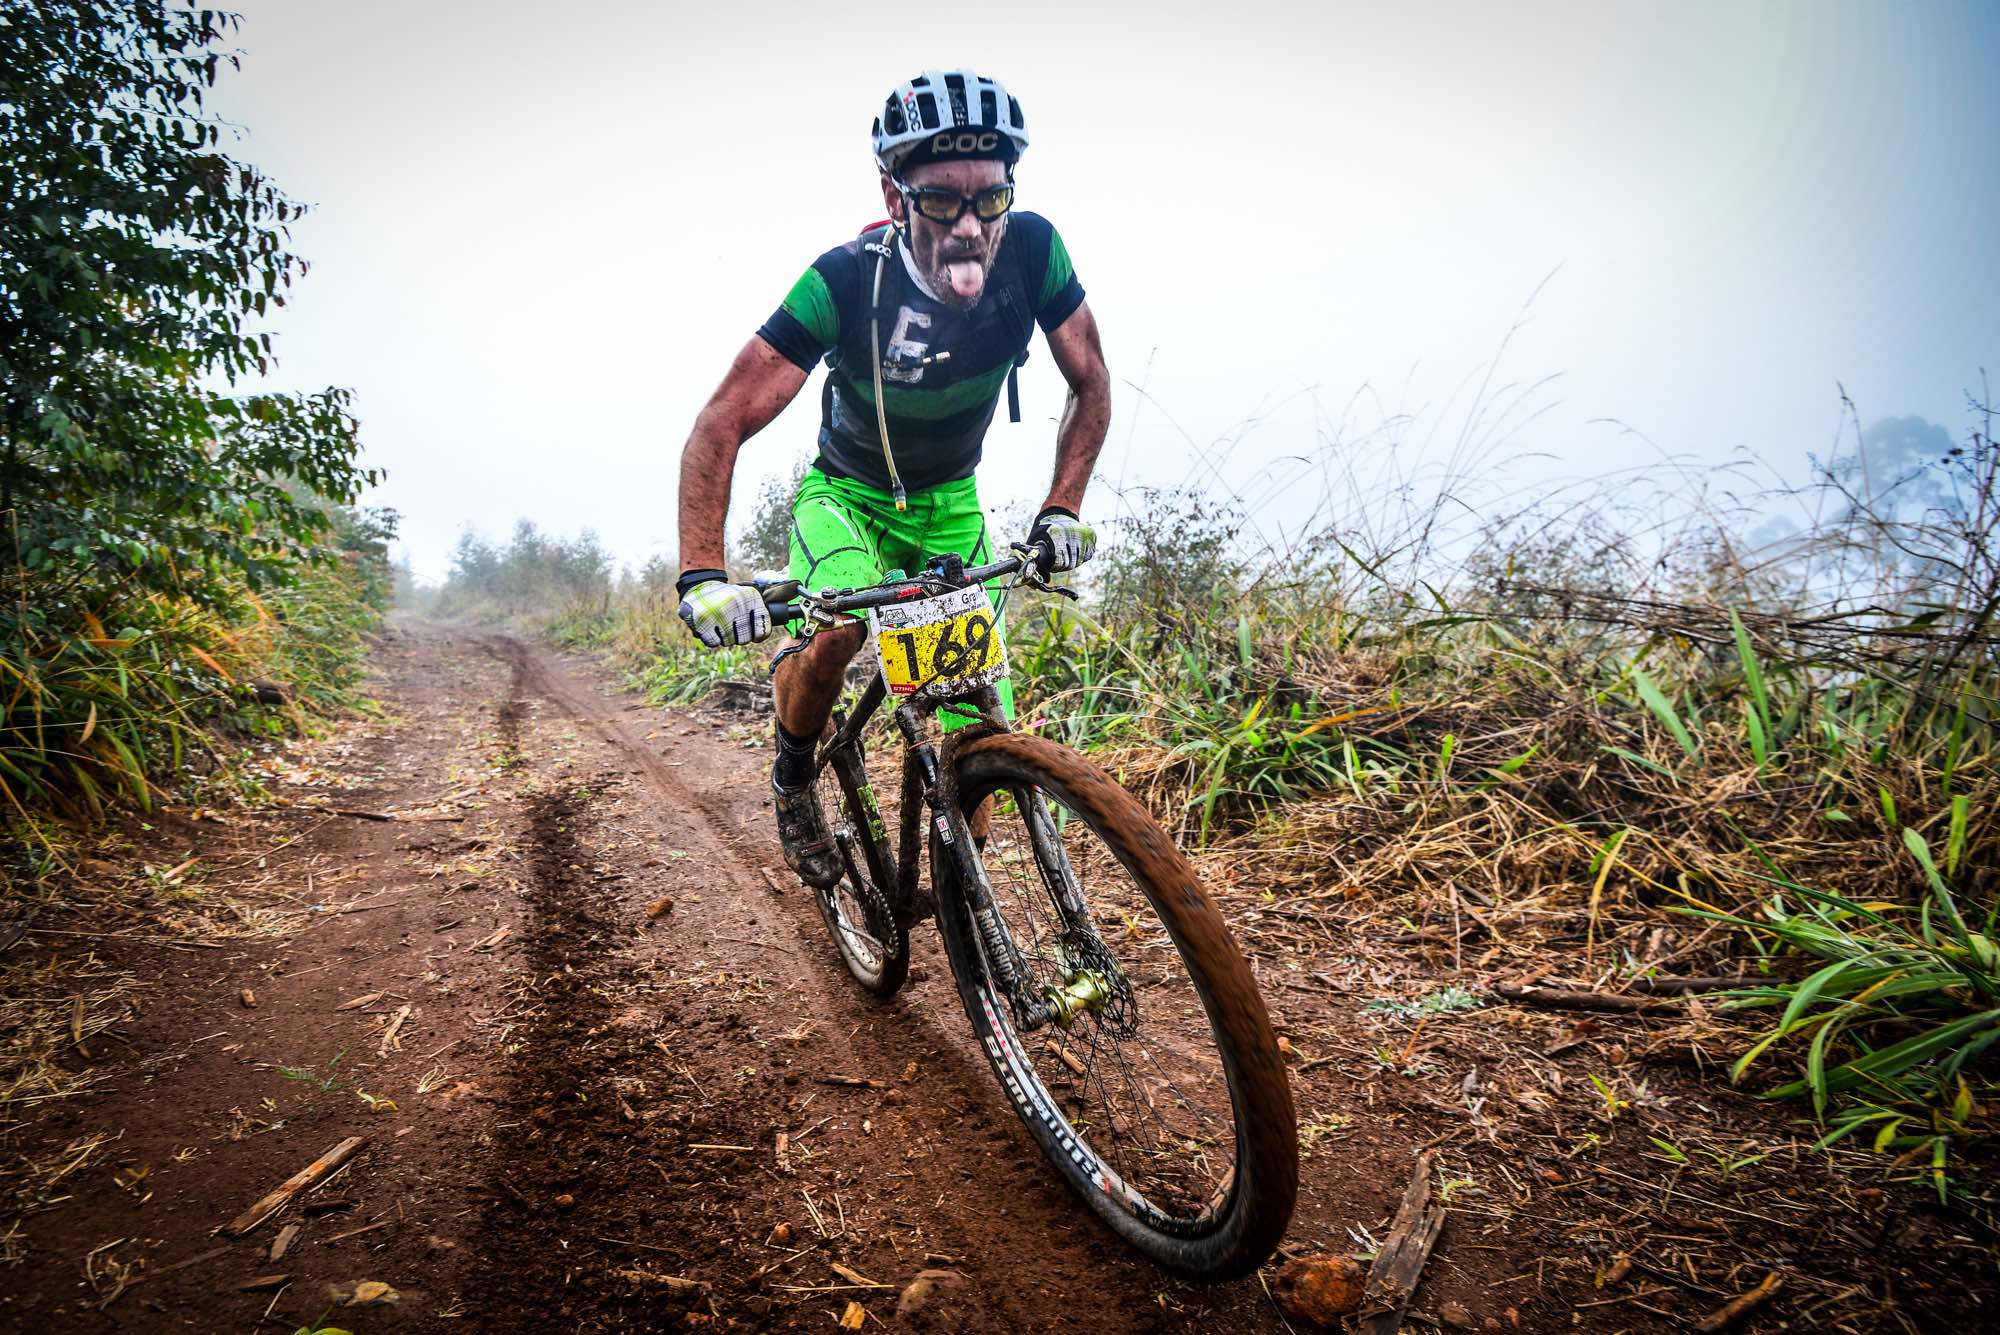 Singlespeed enthusiast, Grant Usher will be heading straight from this year's joBerg2c to the 2016 SA MTB Marathon Championships for Masters 30-and-over, taking place at Cascades MTB Park in Pietermaritzburg on Sunday 1 May. Photo: Darren Goddard